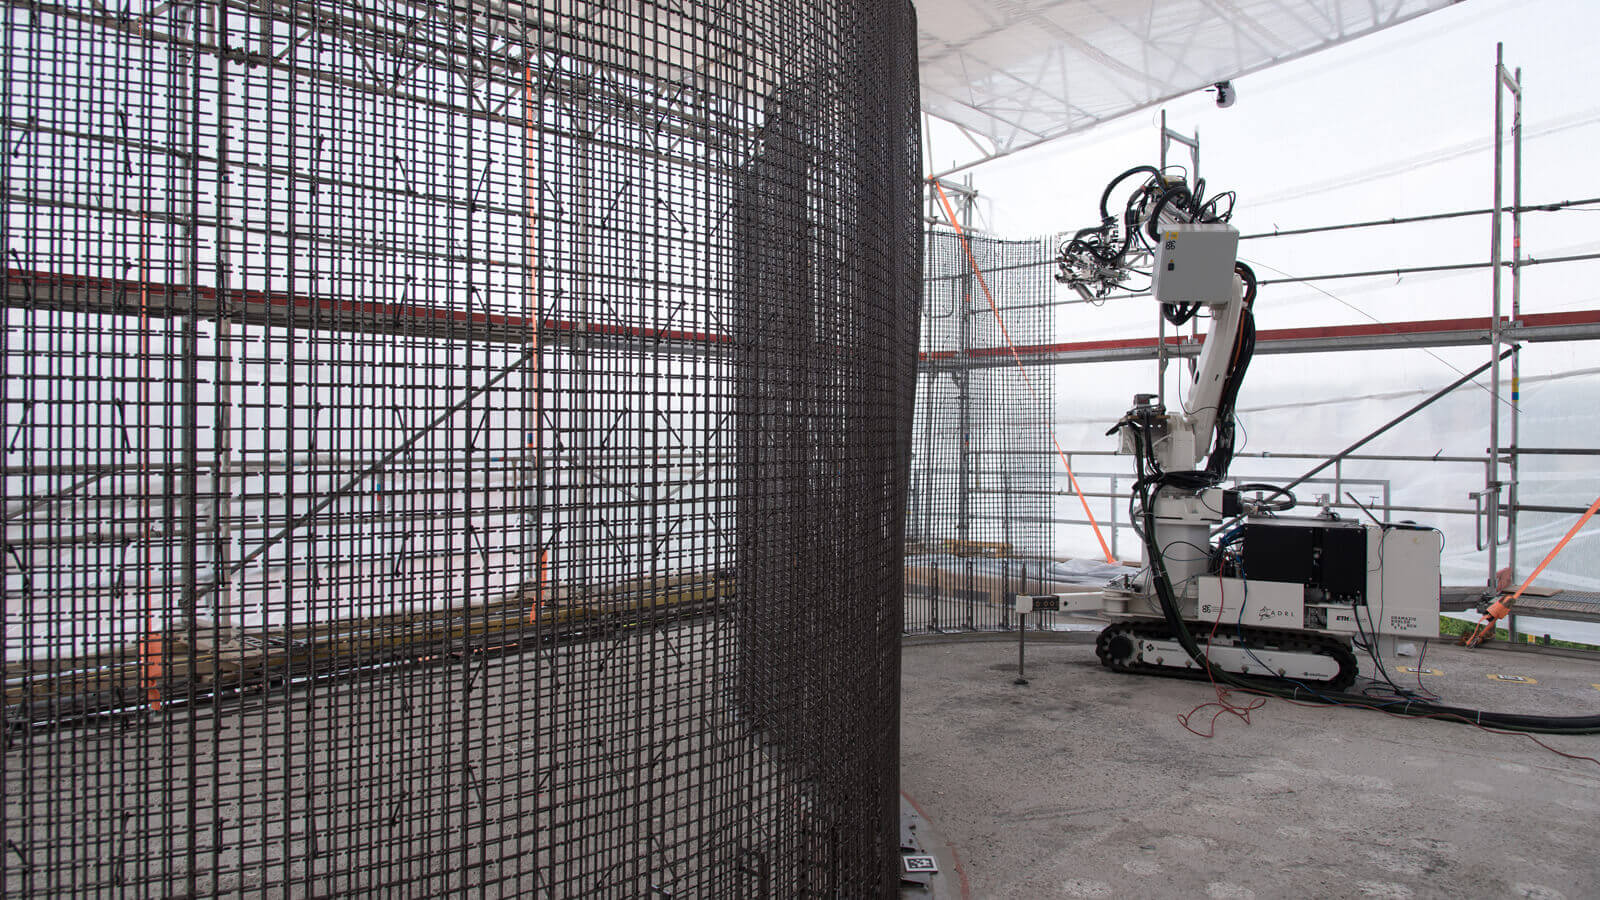 Swiss Researchers Begin Construction of the DFAB HOUSE | All3DP